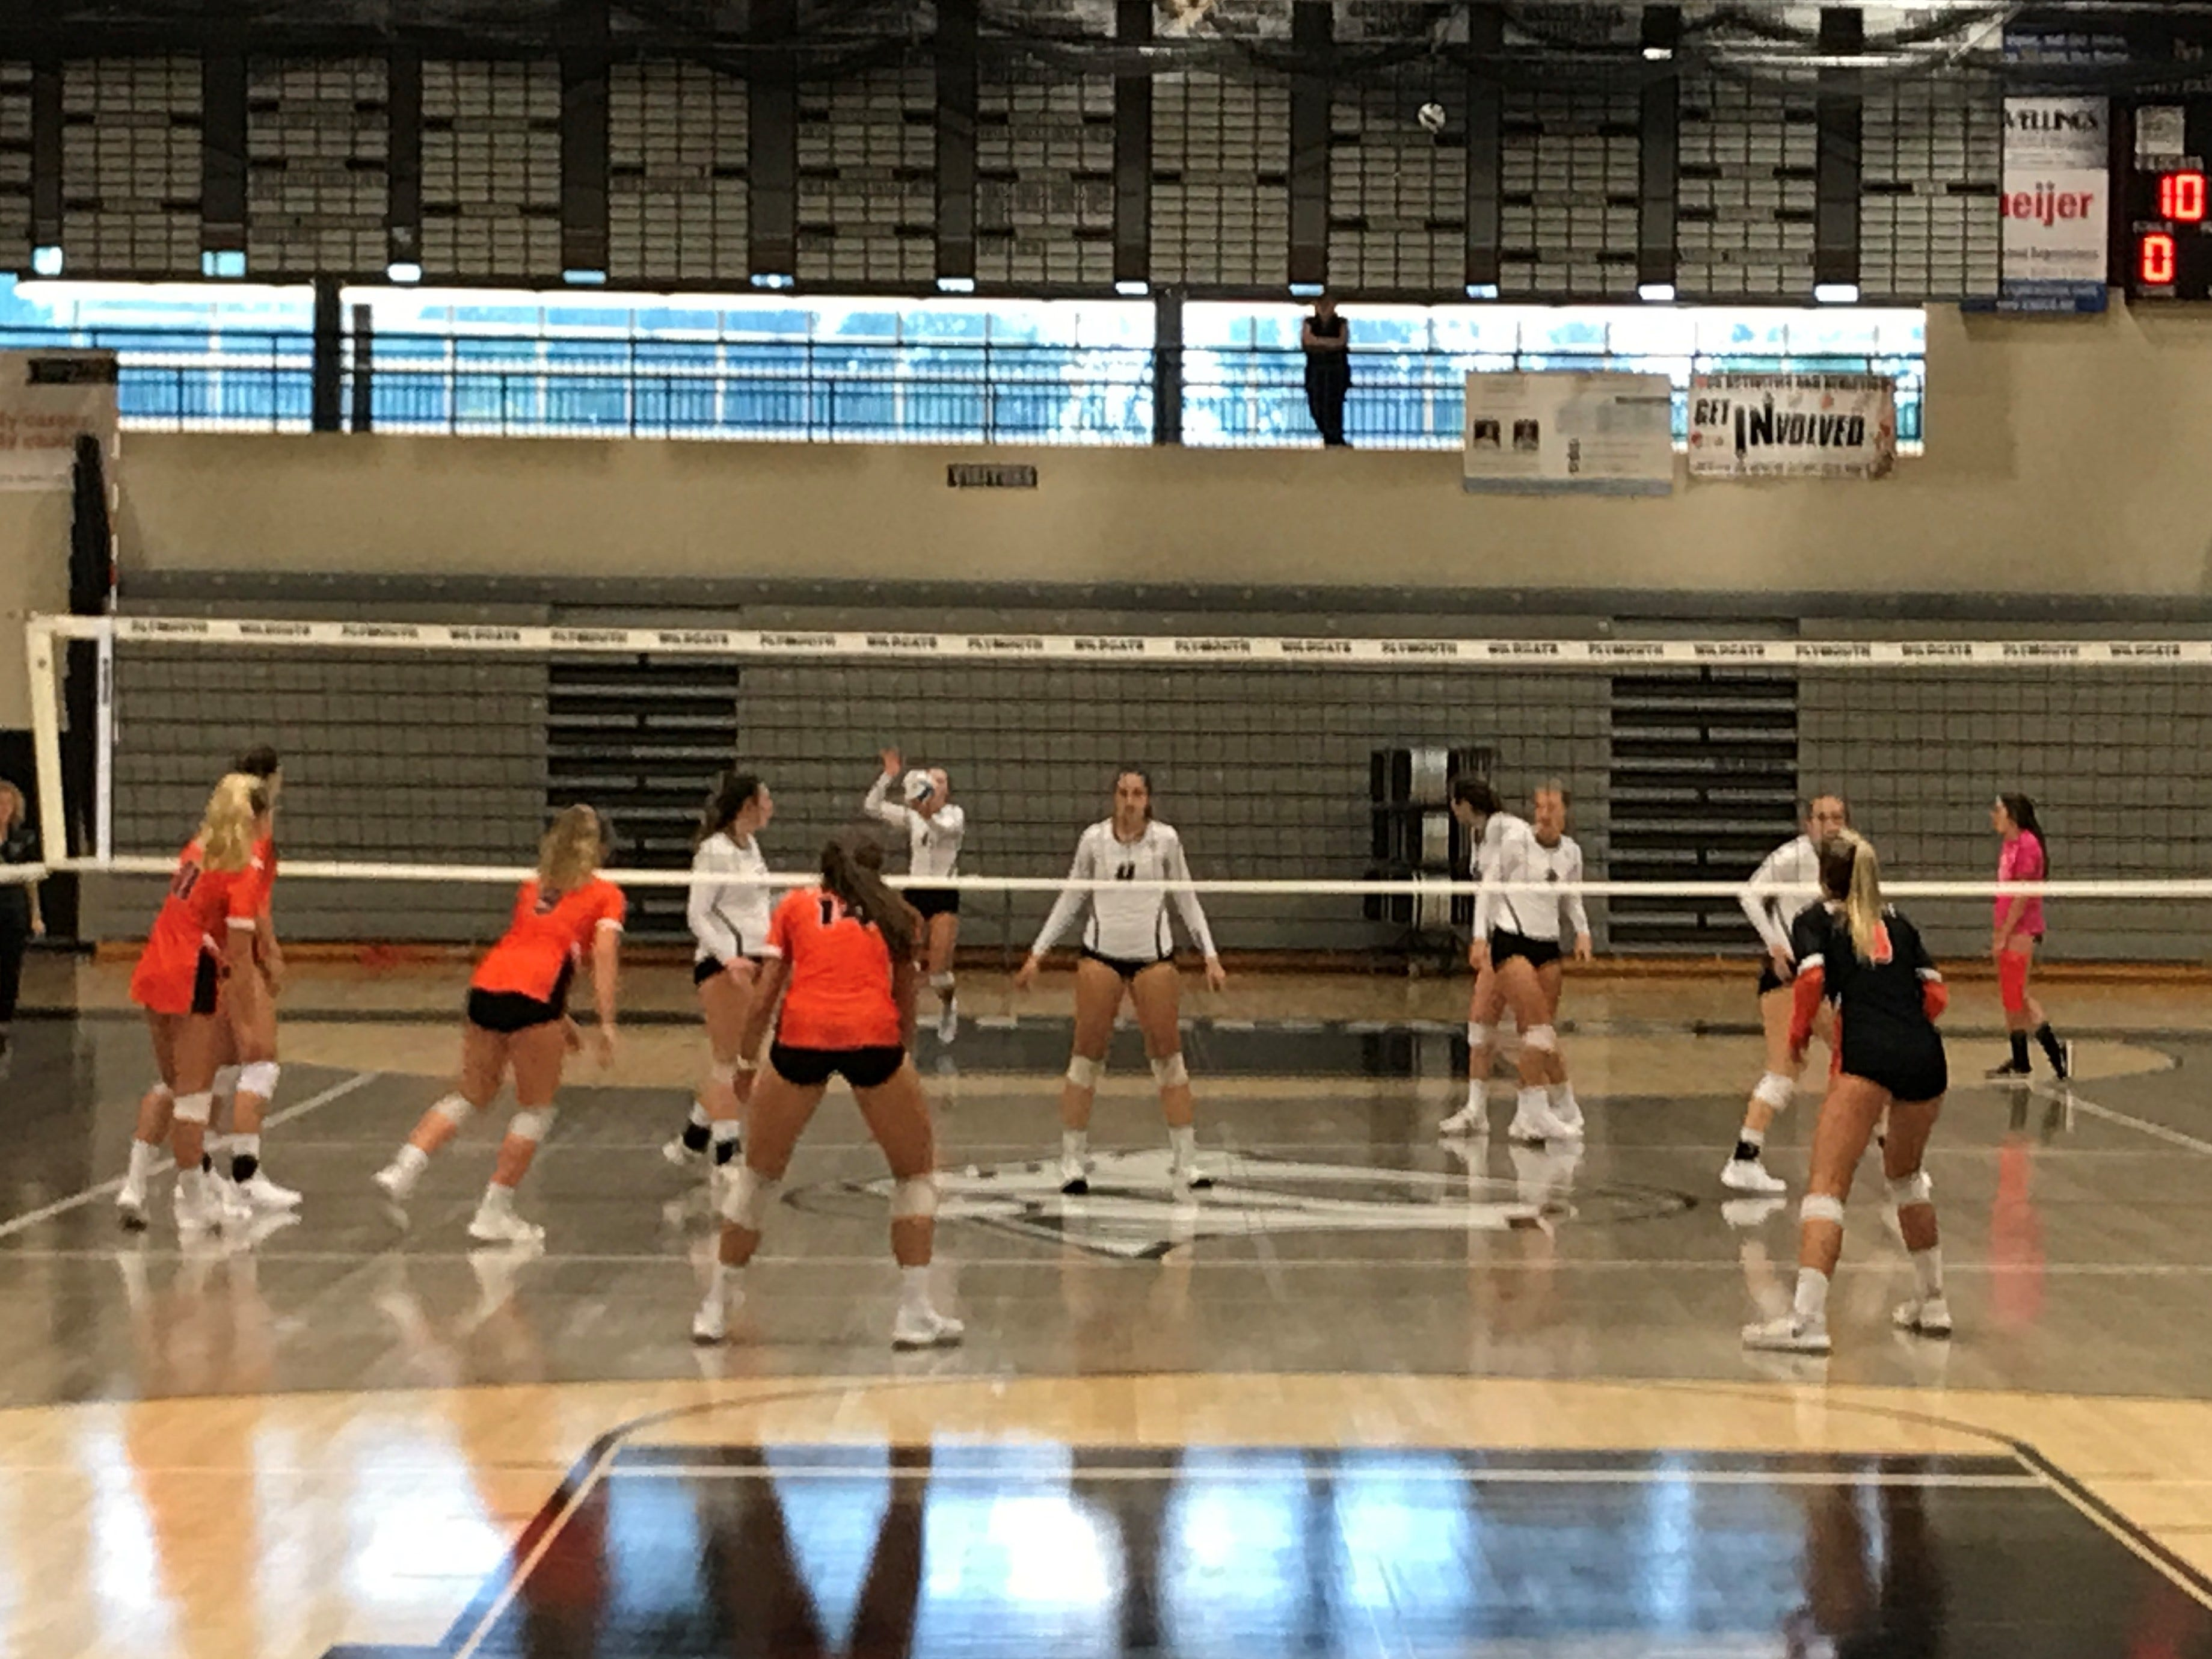 Northville players await the serve from the Plymouth side of the net.